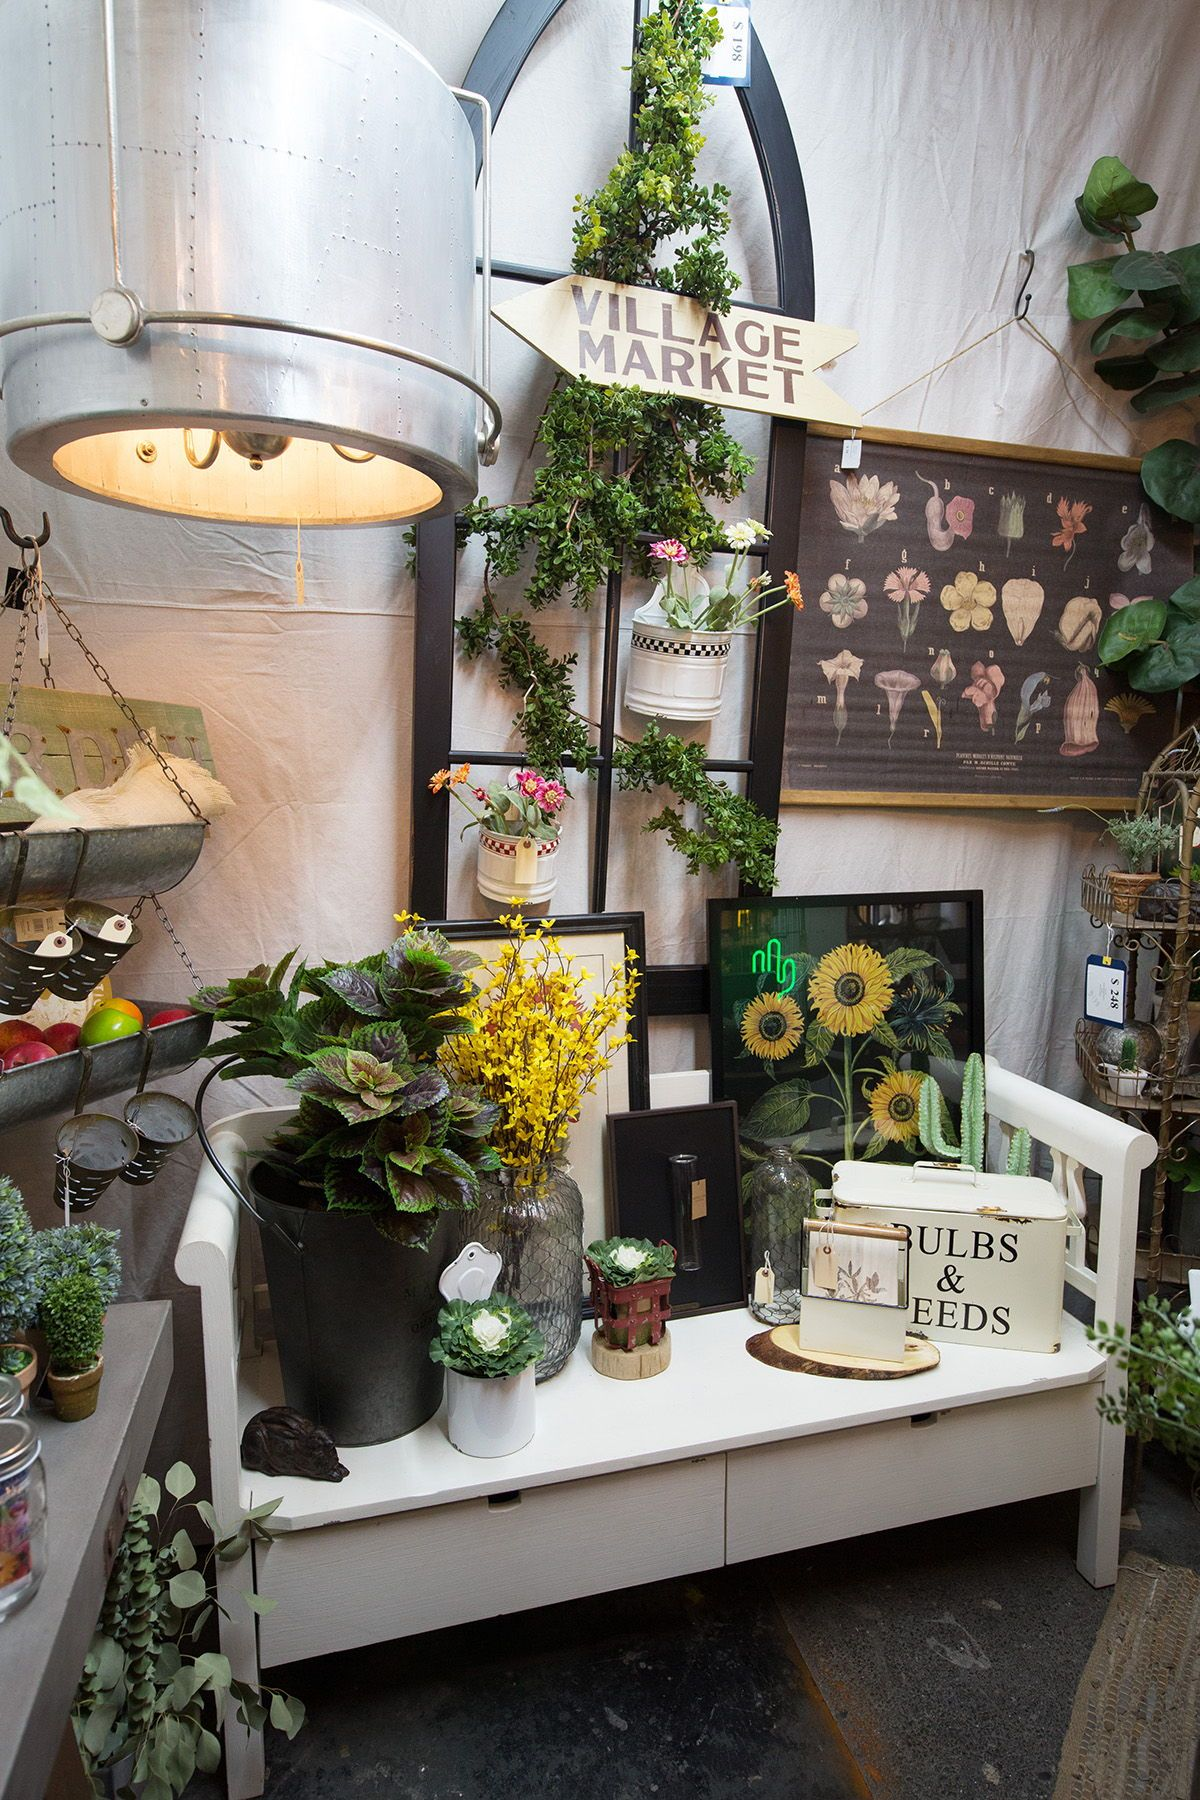 Botanical home decor and garden accessory finds at City